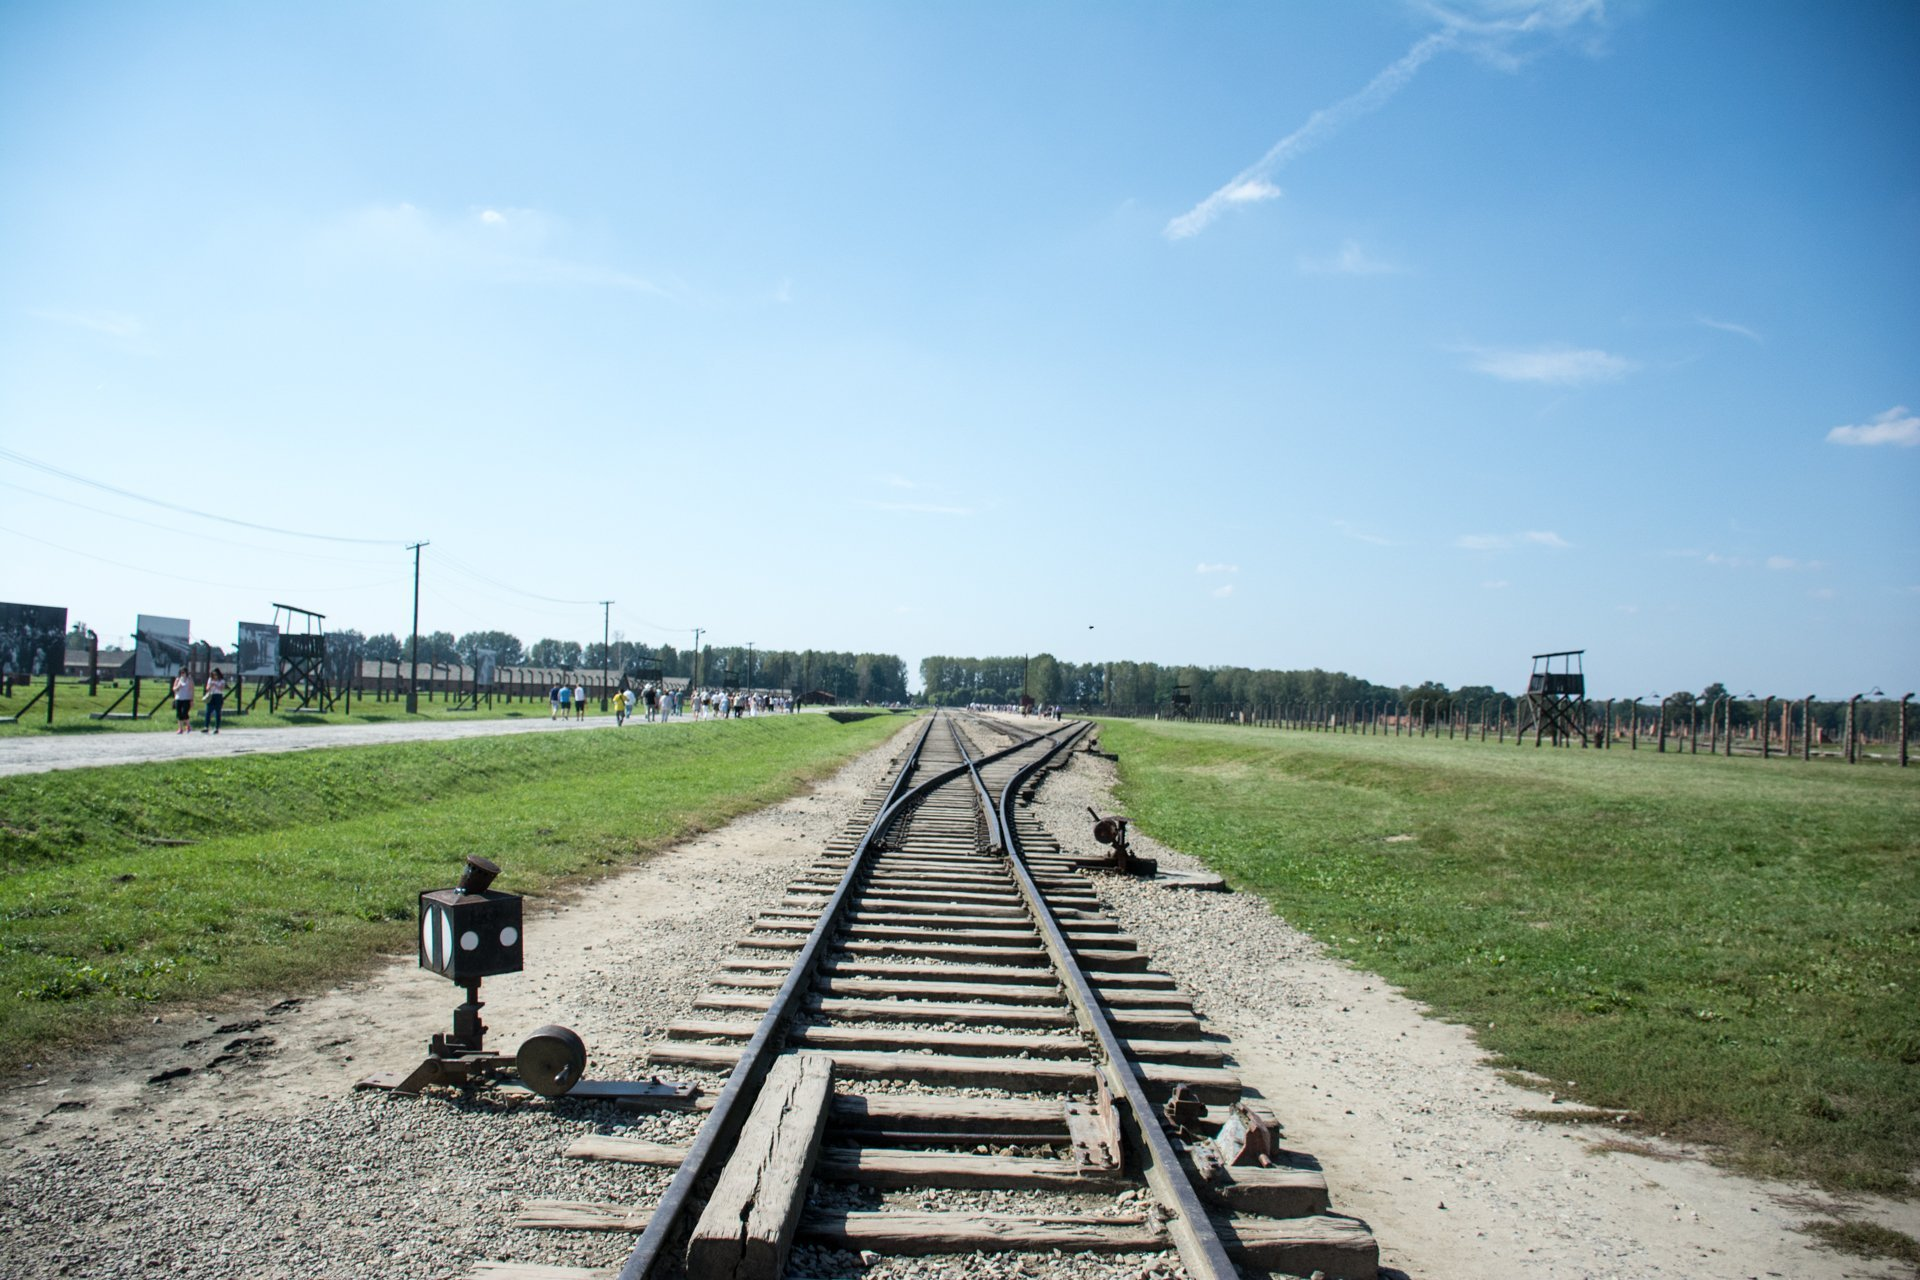 Remainings of the old railroad.